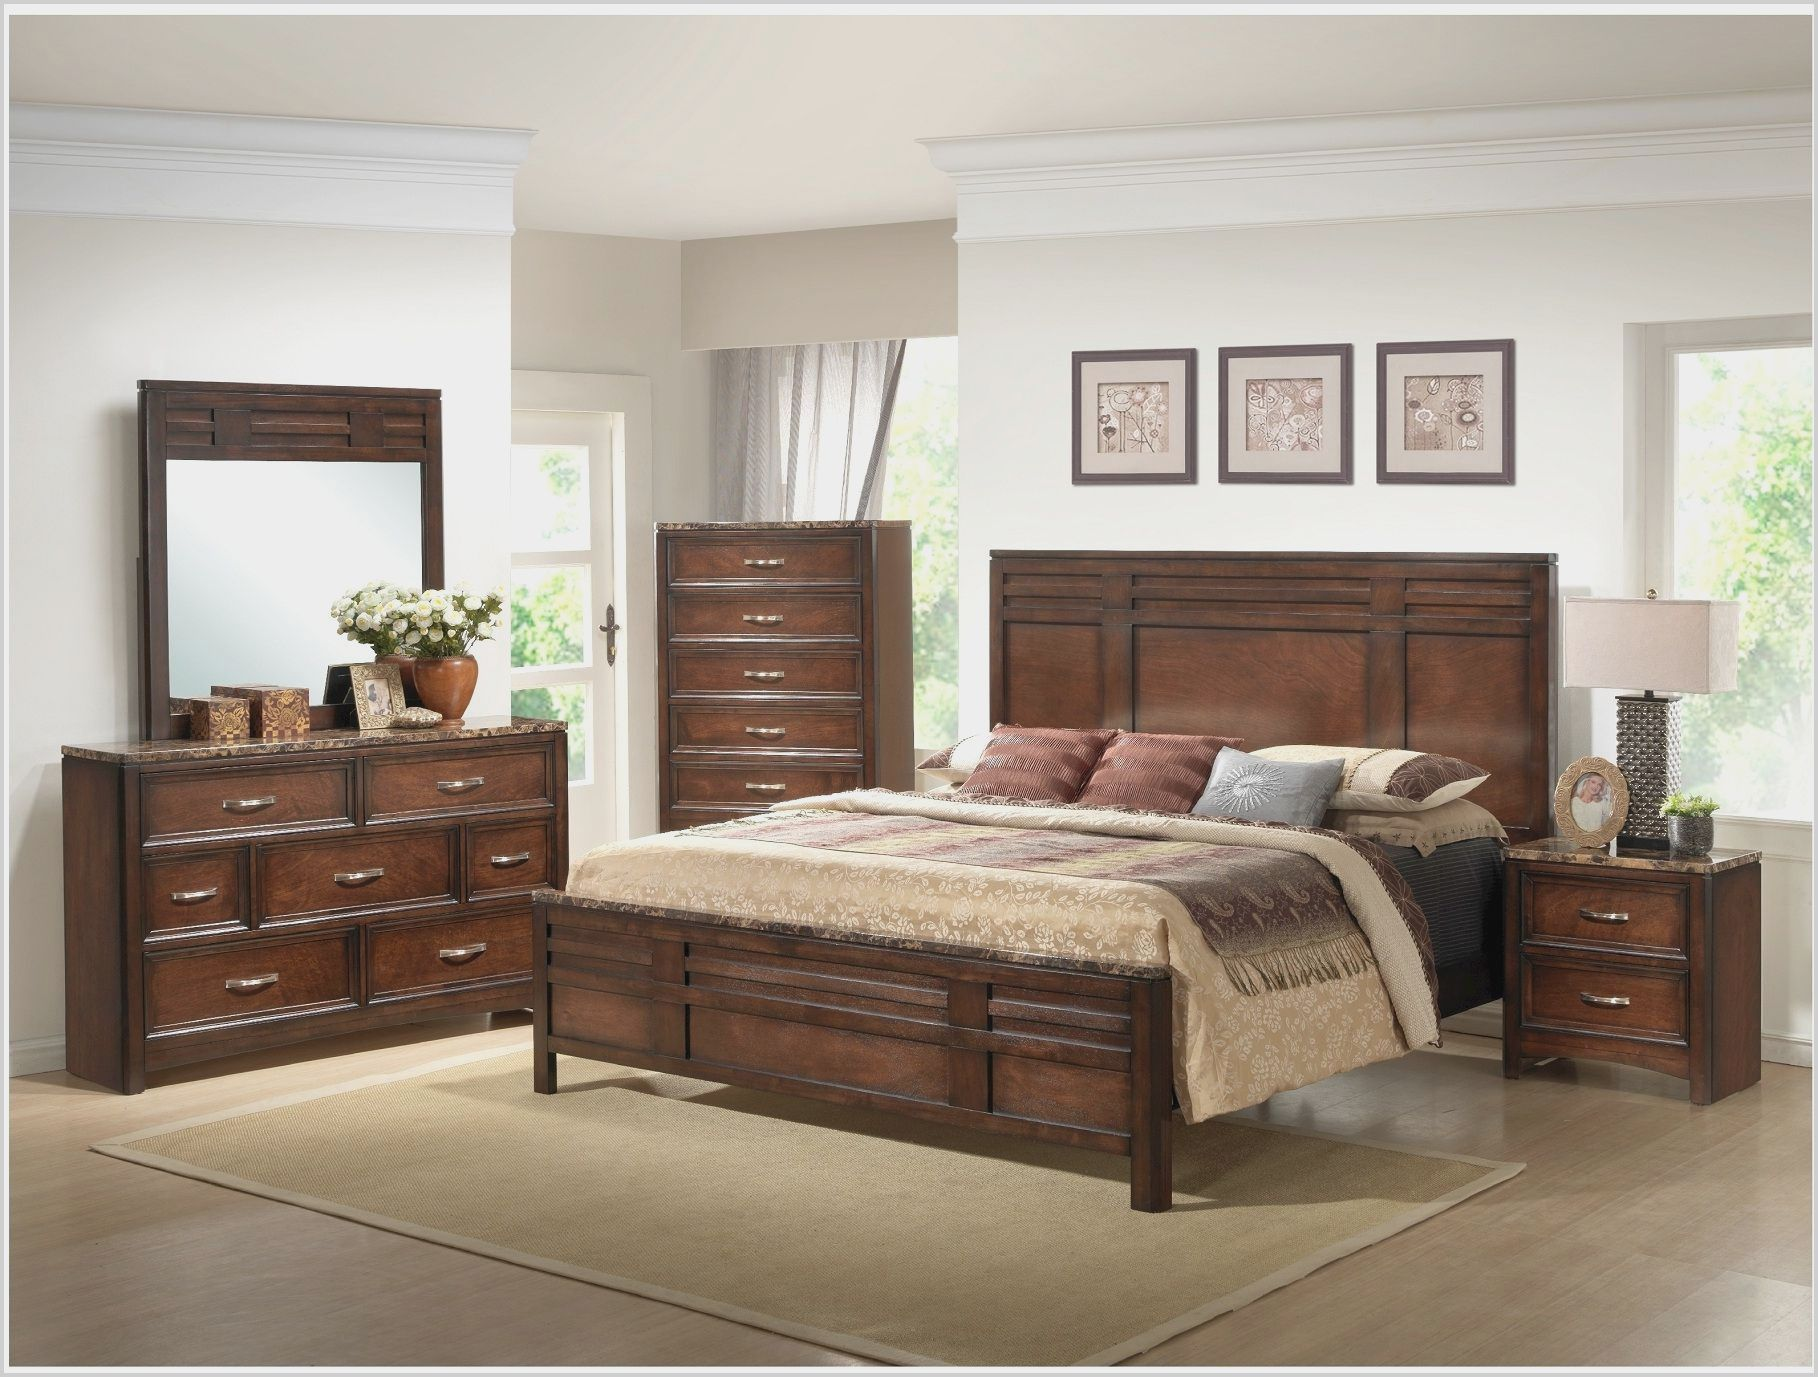 Bedroom Ideas Walnut Furniture in 5  Walnut bedroom furniture